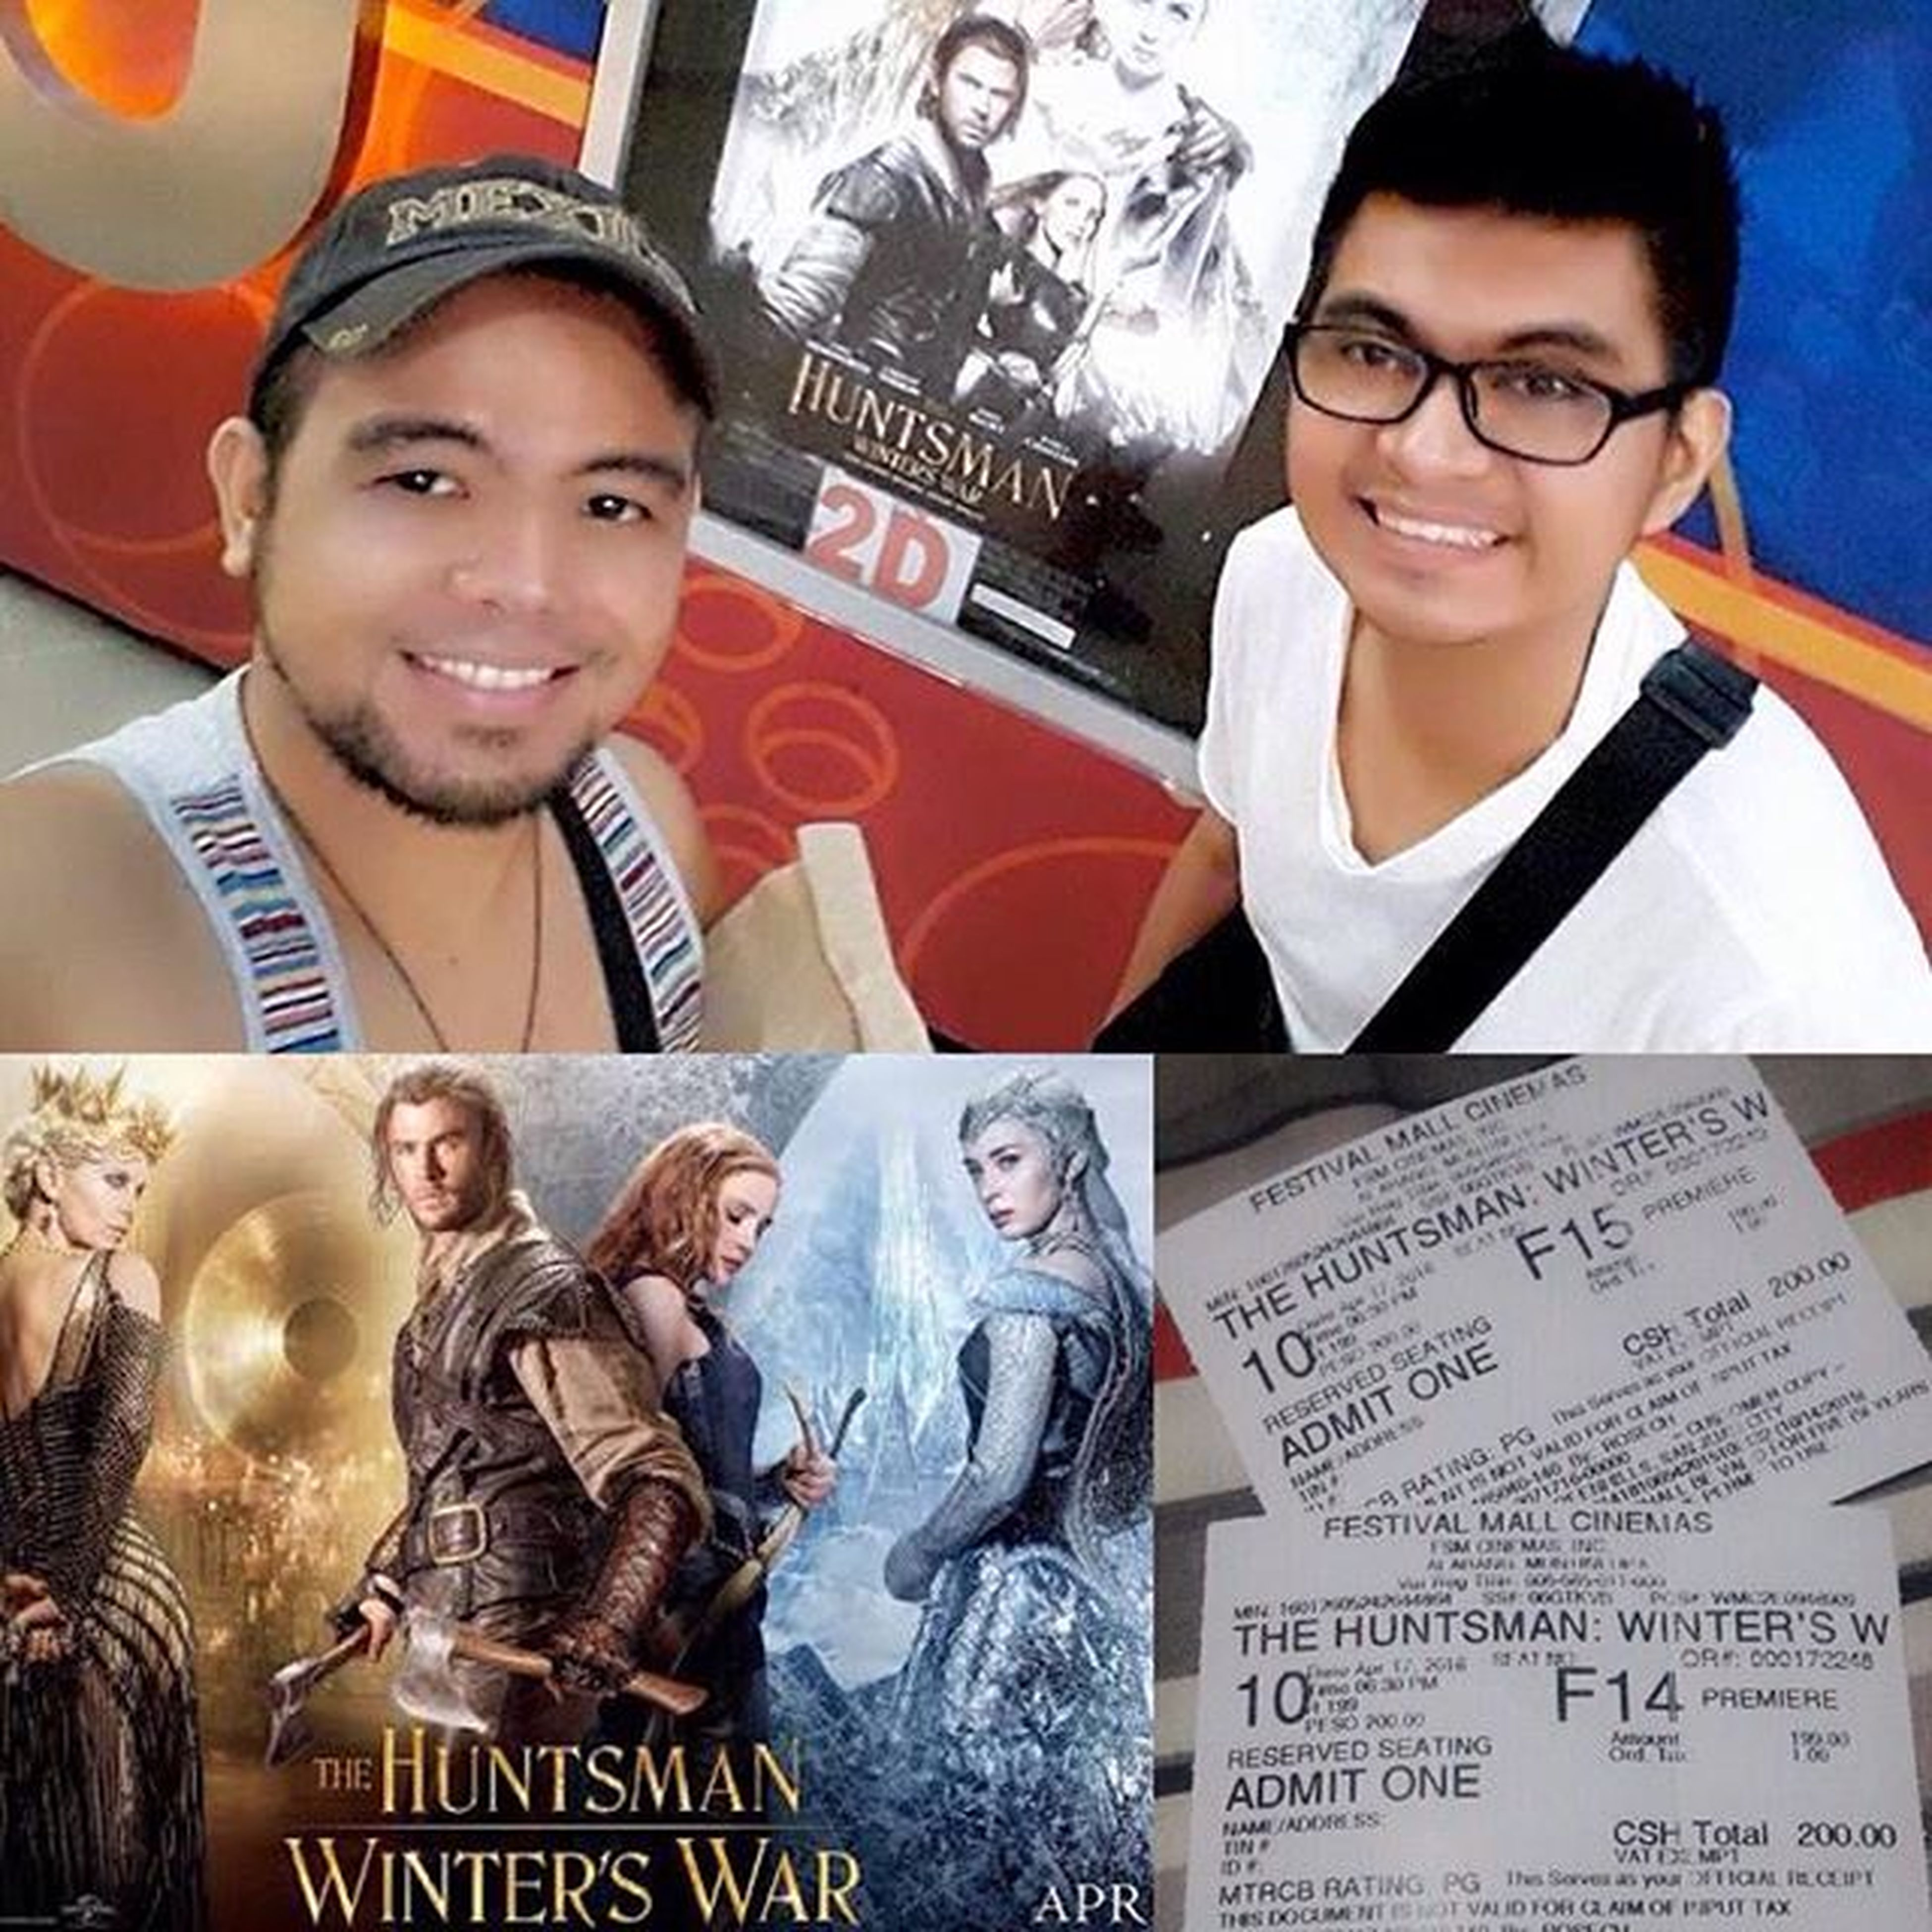 """Done watching """"The Huntsman, Winter's War""""... I've a few not so good reviews about it but I actually liked it. It may not be as romantic as """"Snow White and The Huntsman"""" but the twist in this classic fairy tale makes it exciting. Worth watching for me, right @ed.gamboa? MovieAddicts SundayMovieDateNight Lovewins Mine 😊❤️👬🎞📽"""